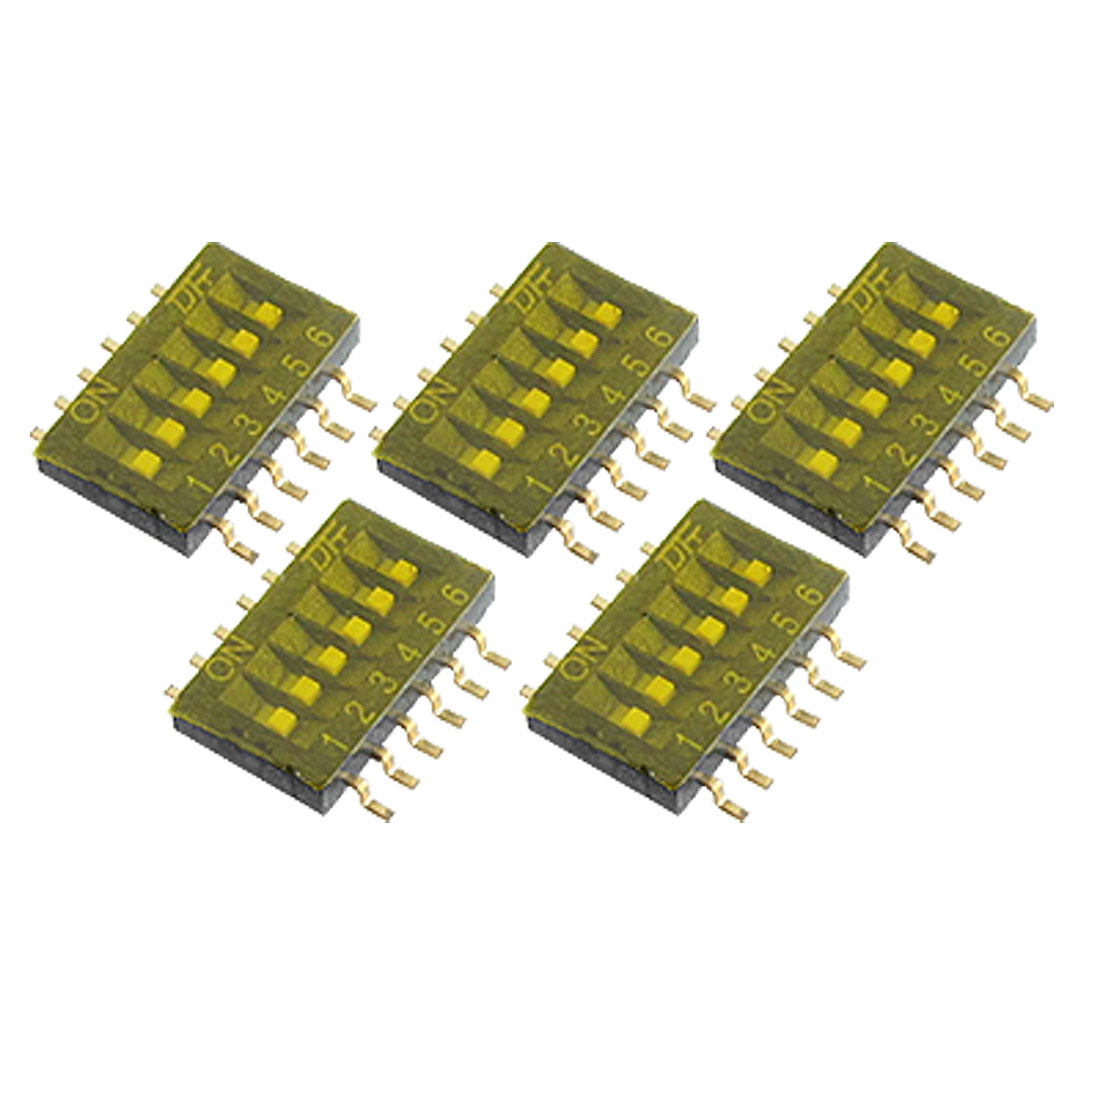 5 Pcs 6 Position Dual Row 1.27mm Half Pitch SMT Type DIP Switch